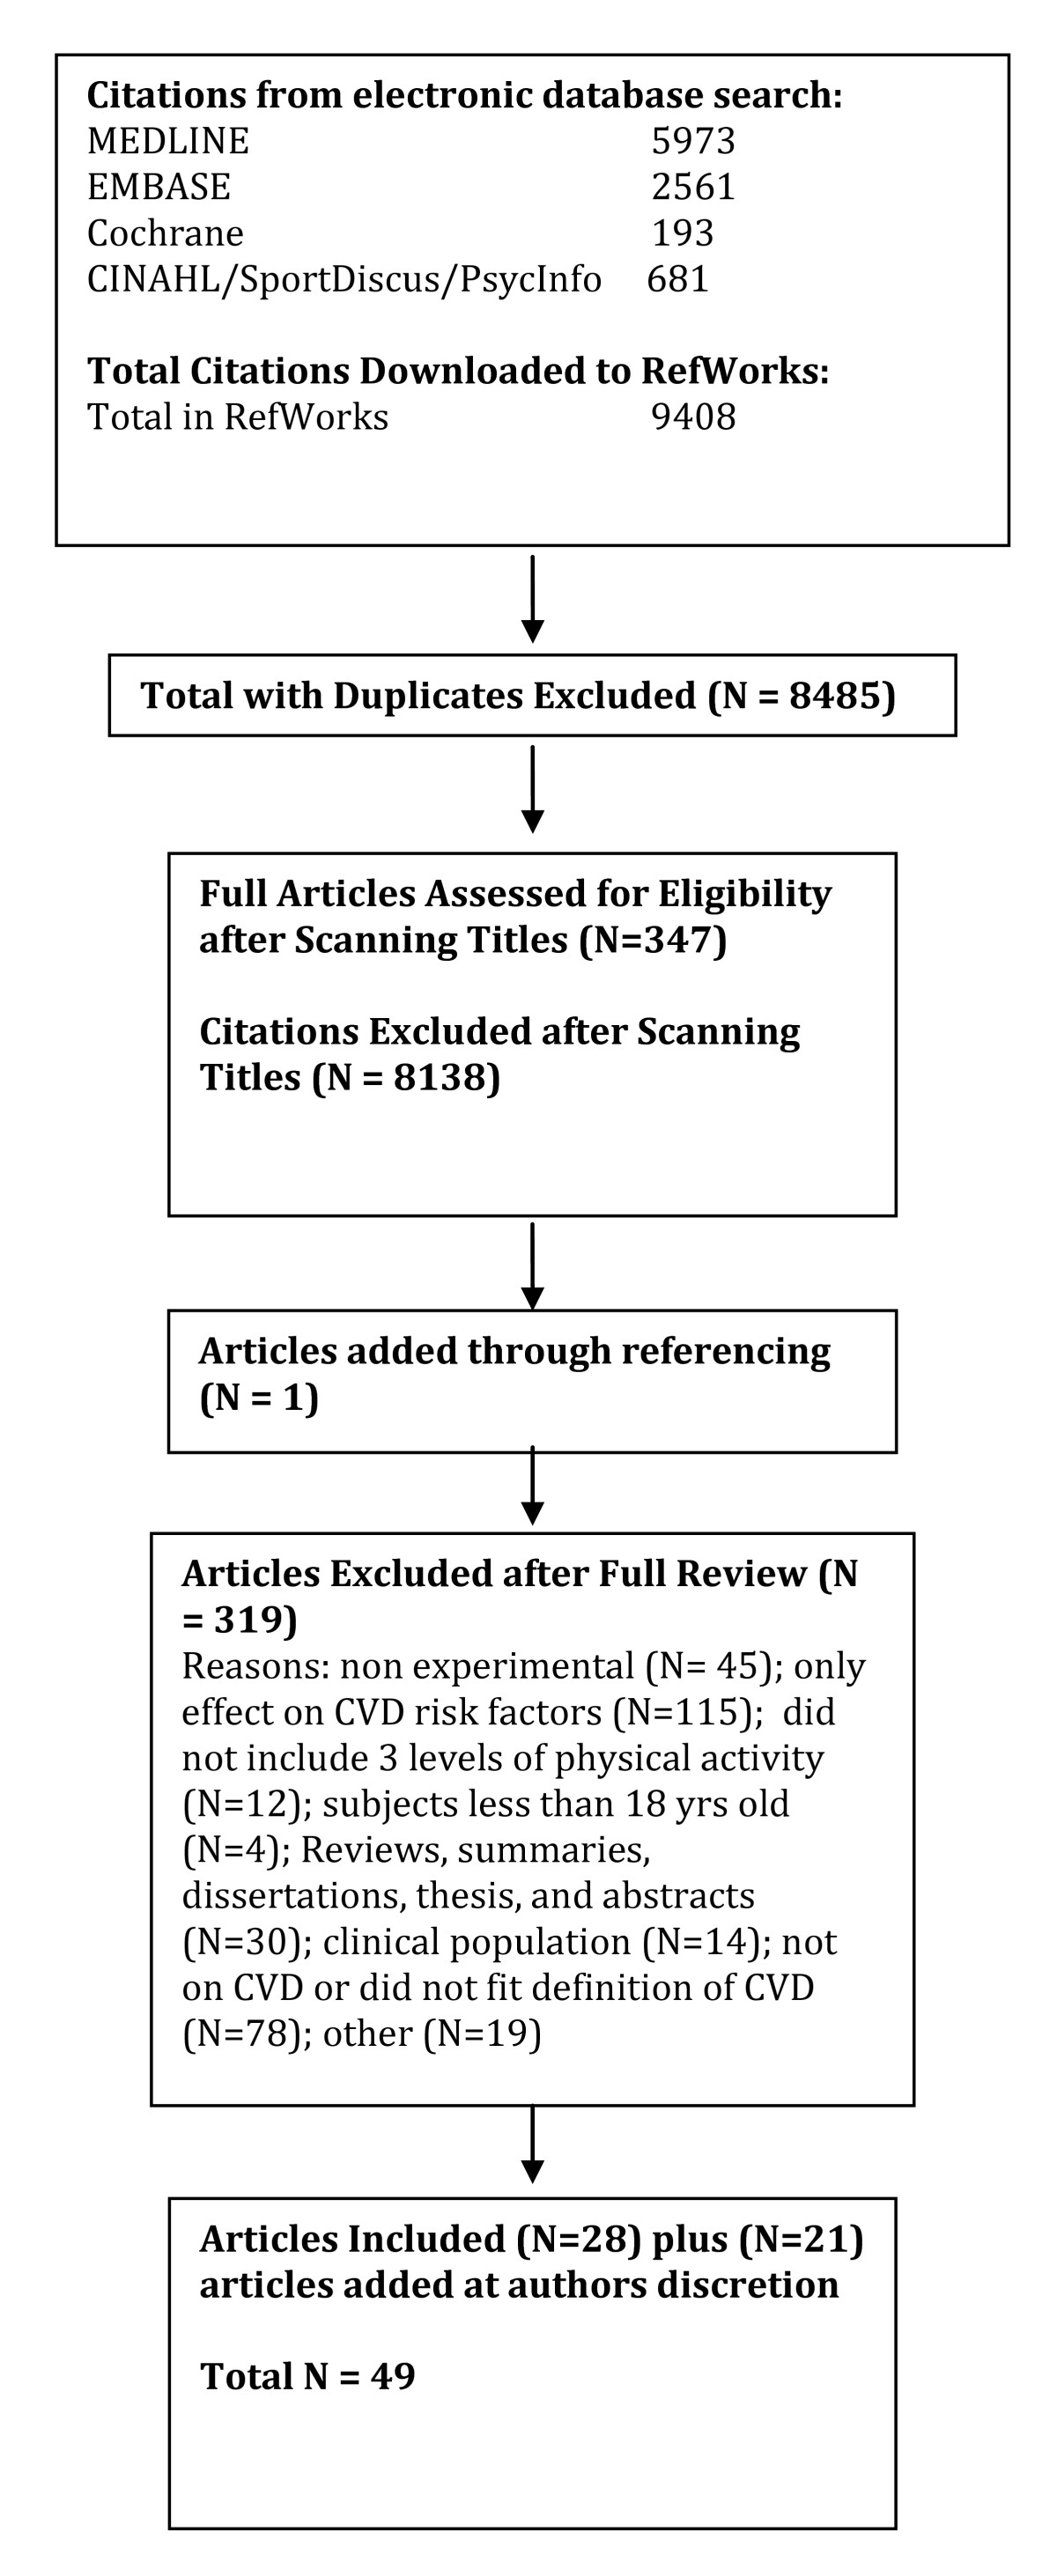 http://static-content.springer.com/image/art%3A10.1186%2F1479-5868-7-39/MediaObjects/12966_2009_Article_345_Fig4_HTML.jpg